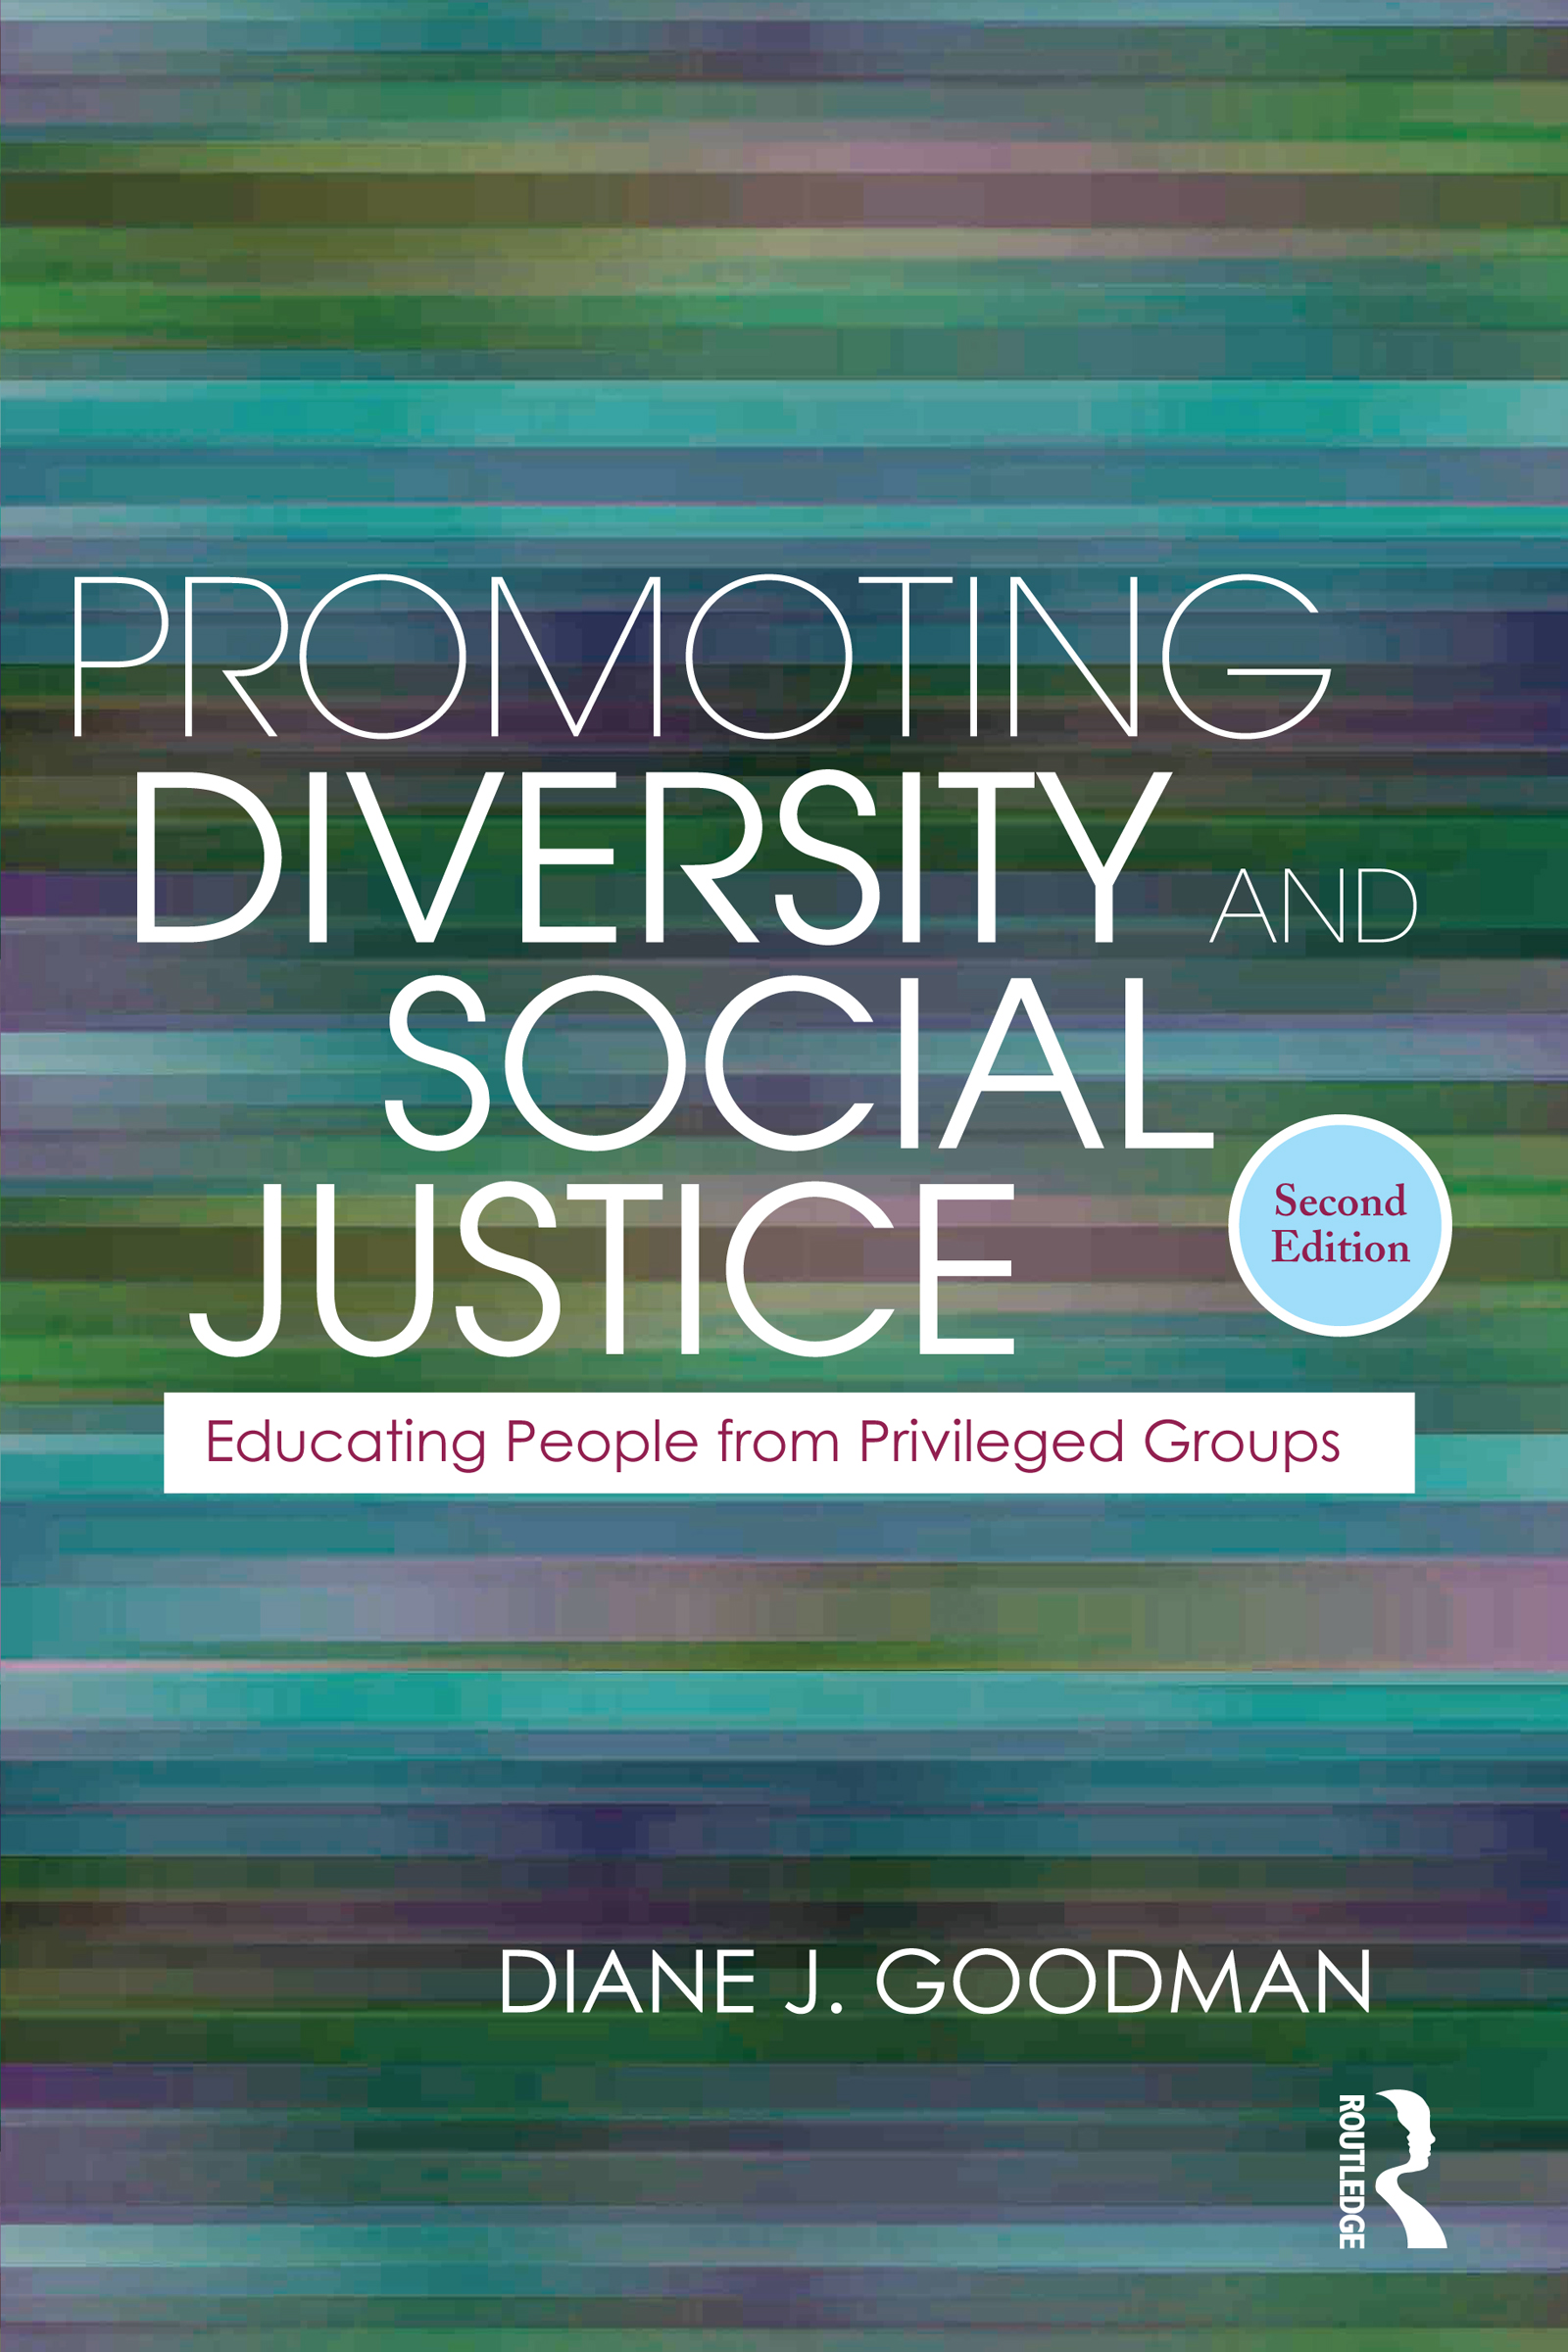 Promoting Diversity and Social Justice